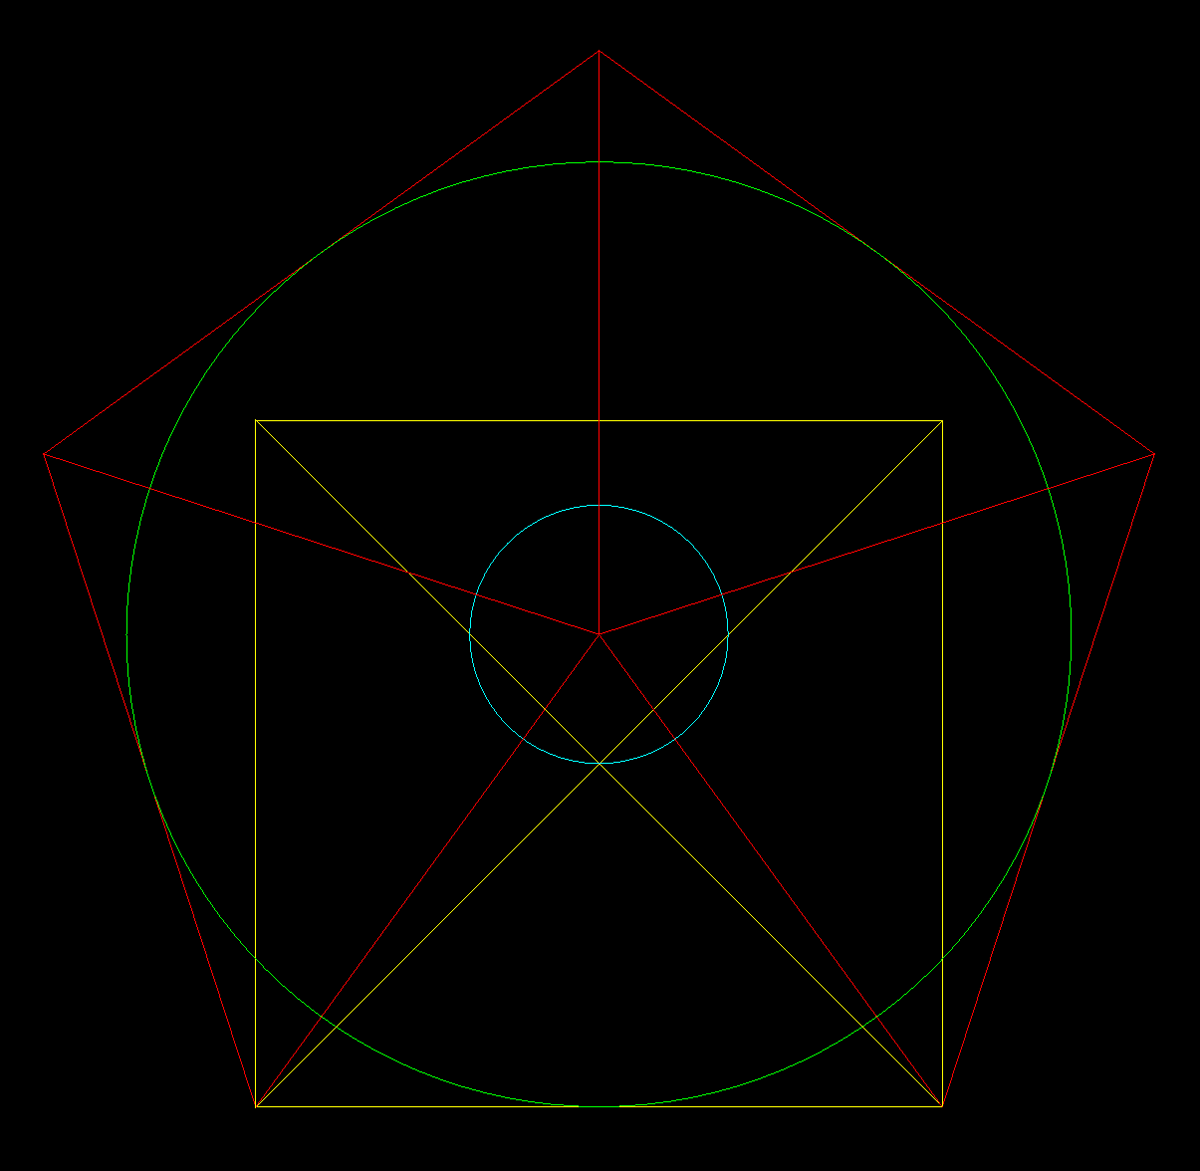 typical drawing in Q showing precise vector drawing